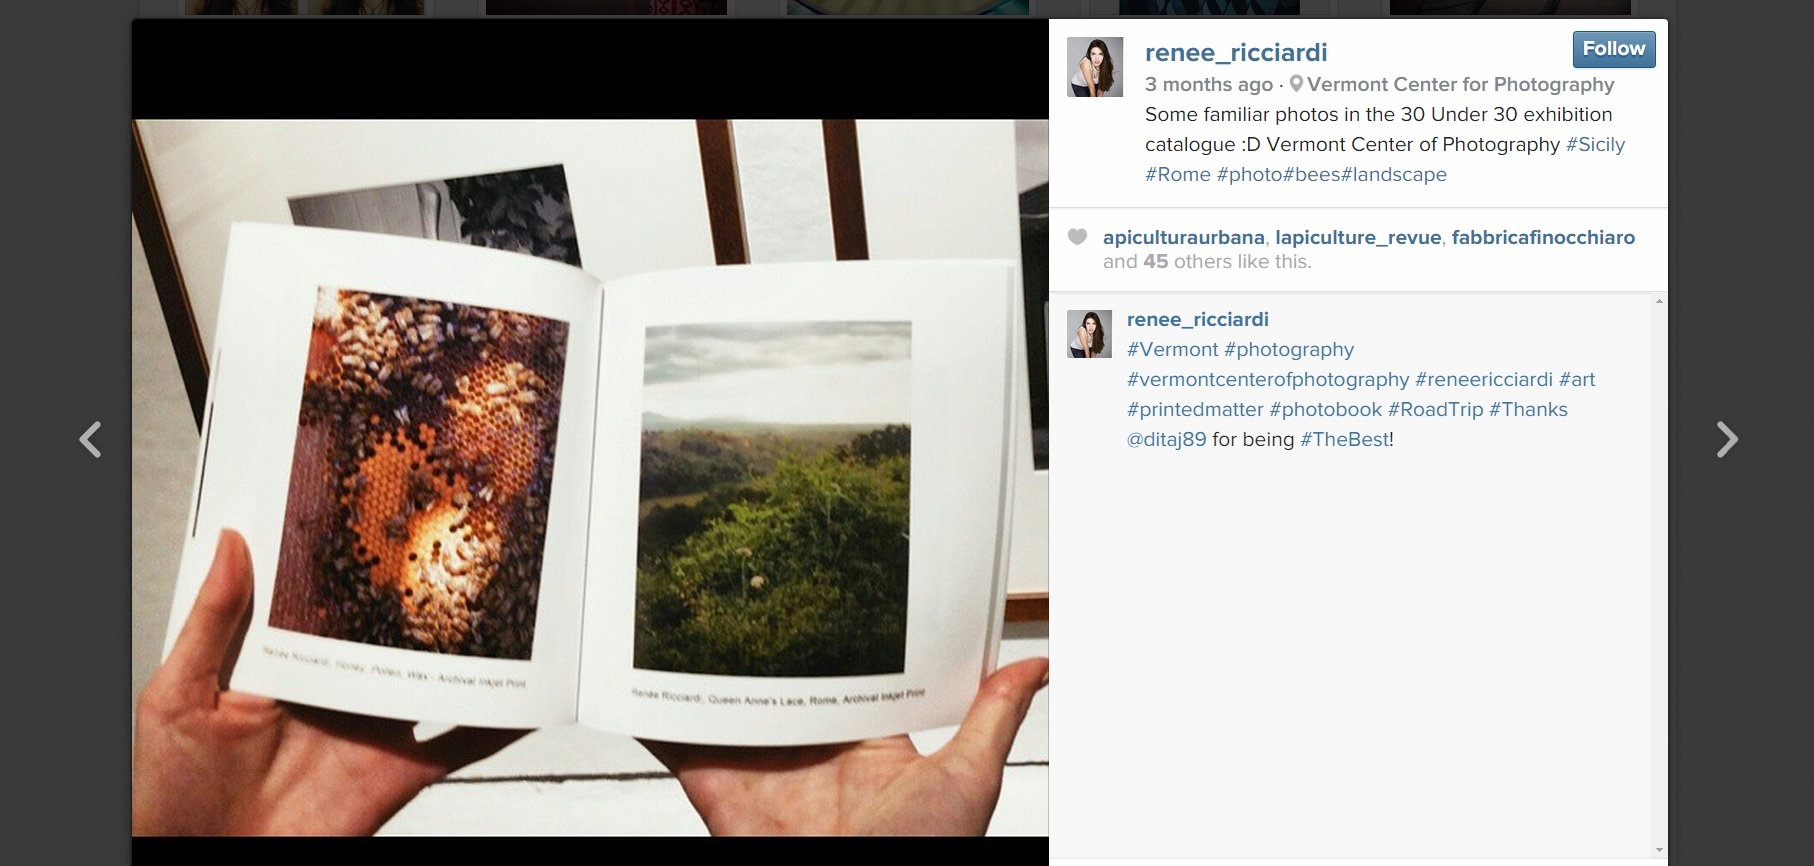 My Images in the VCP Catalogue - Screenshot from Instagram @Renee_Ricciardi